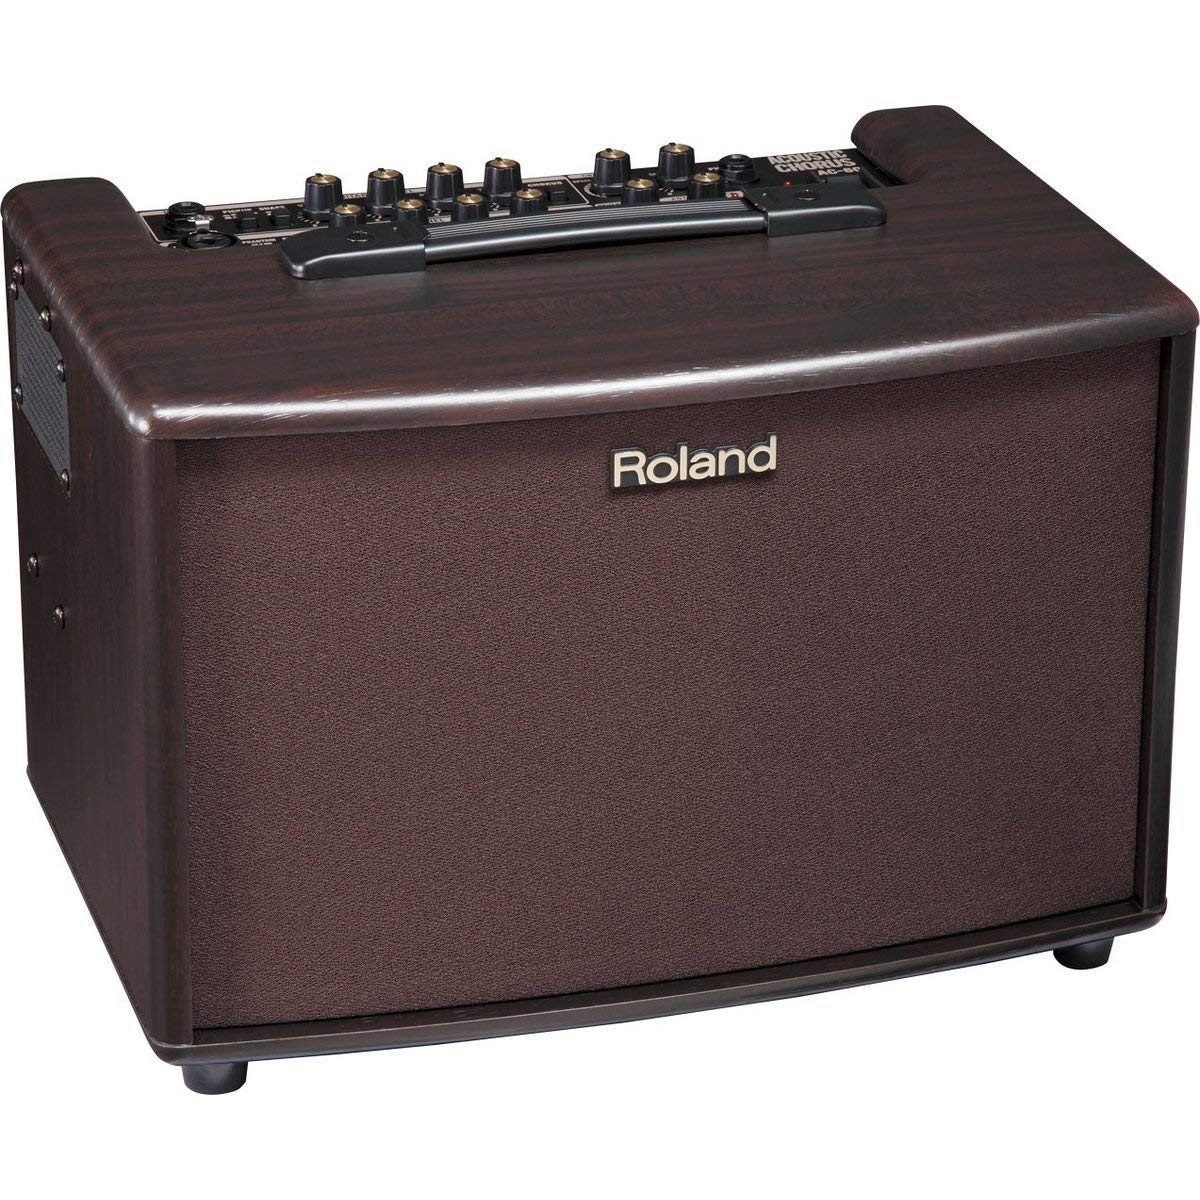 Roland AC-60RW | 60watts Stereo Acoustic Chorus Guitar Amplifier Rosewood